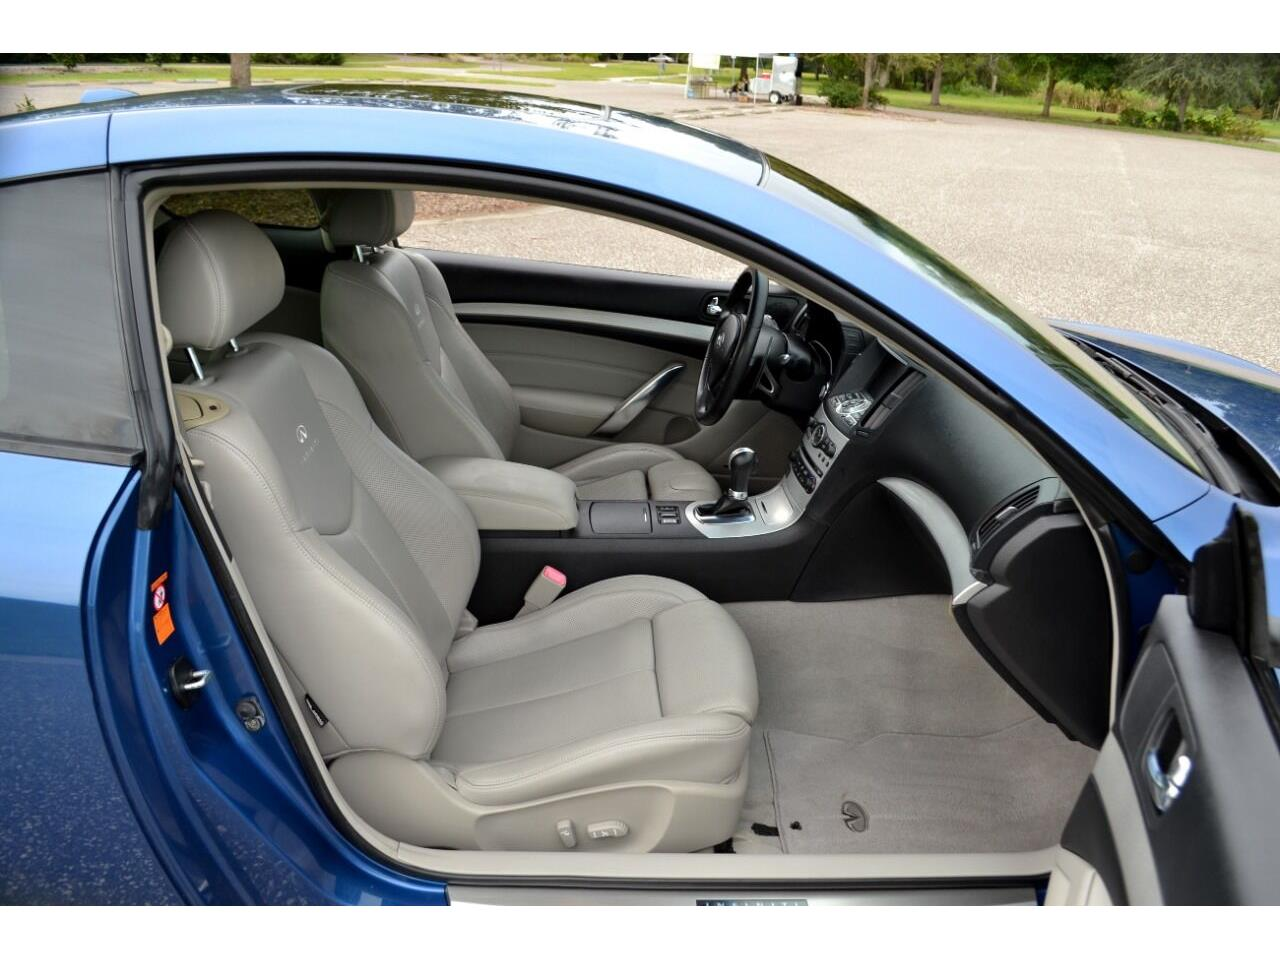 2008 Infiniti G37 (CC-1383223) for sale in Clearwater, Florida